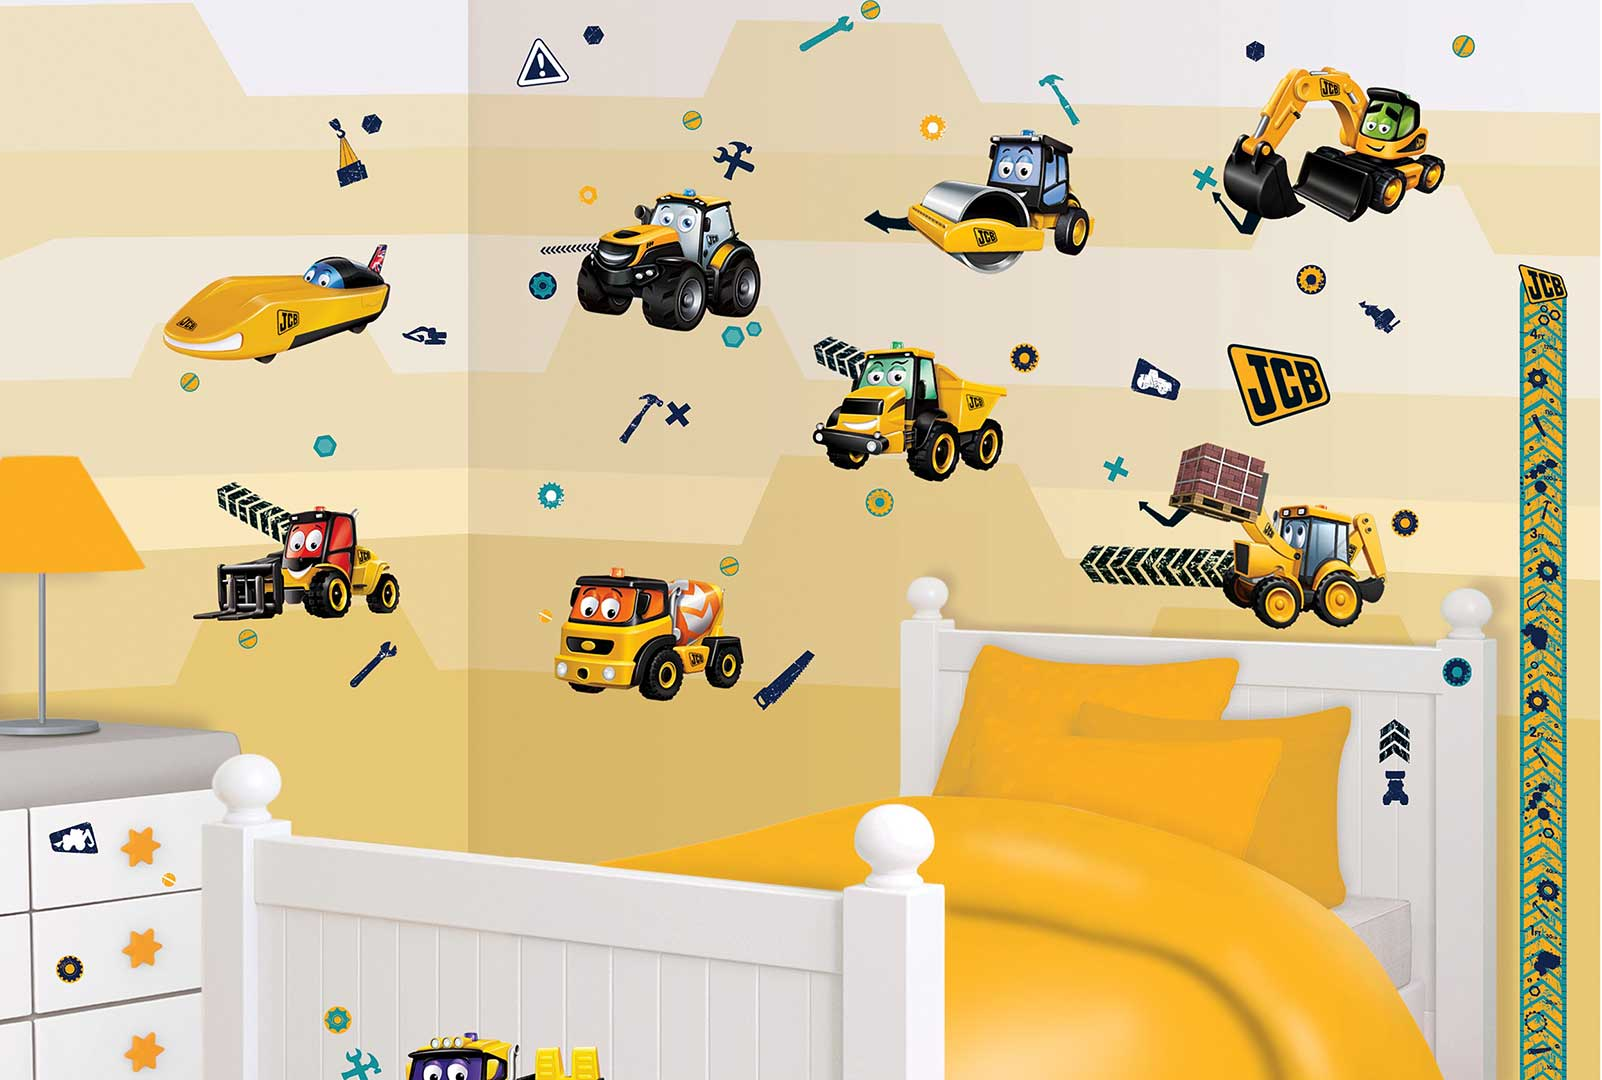 wandtattoo kinderzimmer baustelle jcb walltastic wandsticker. Black Bedroom Furniture Sets. Home Design Ideas